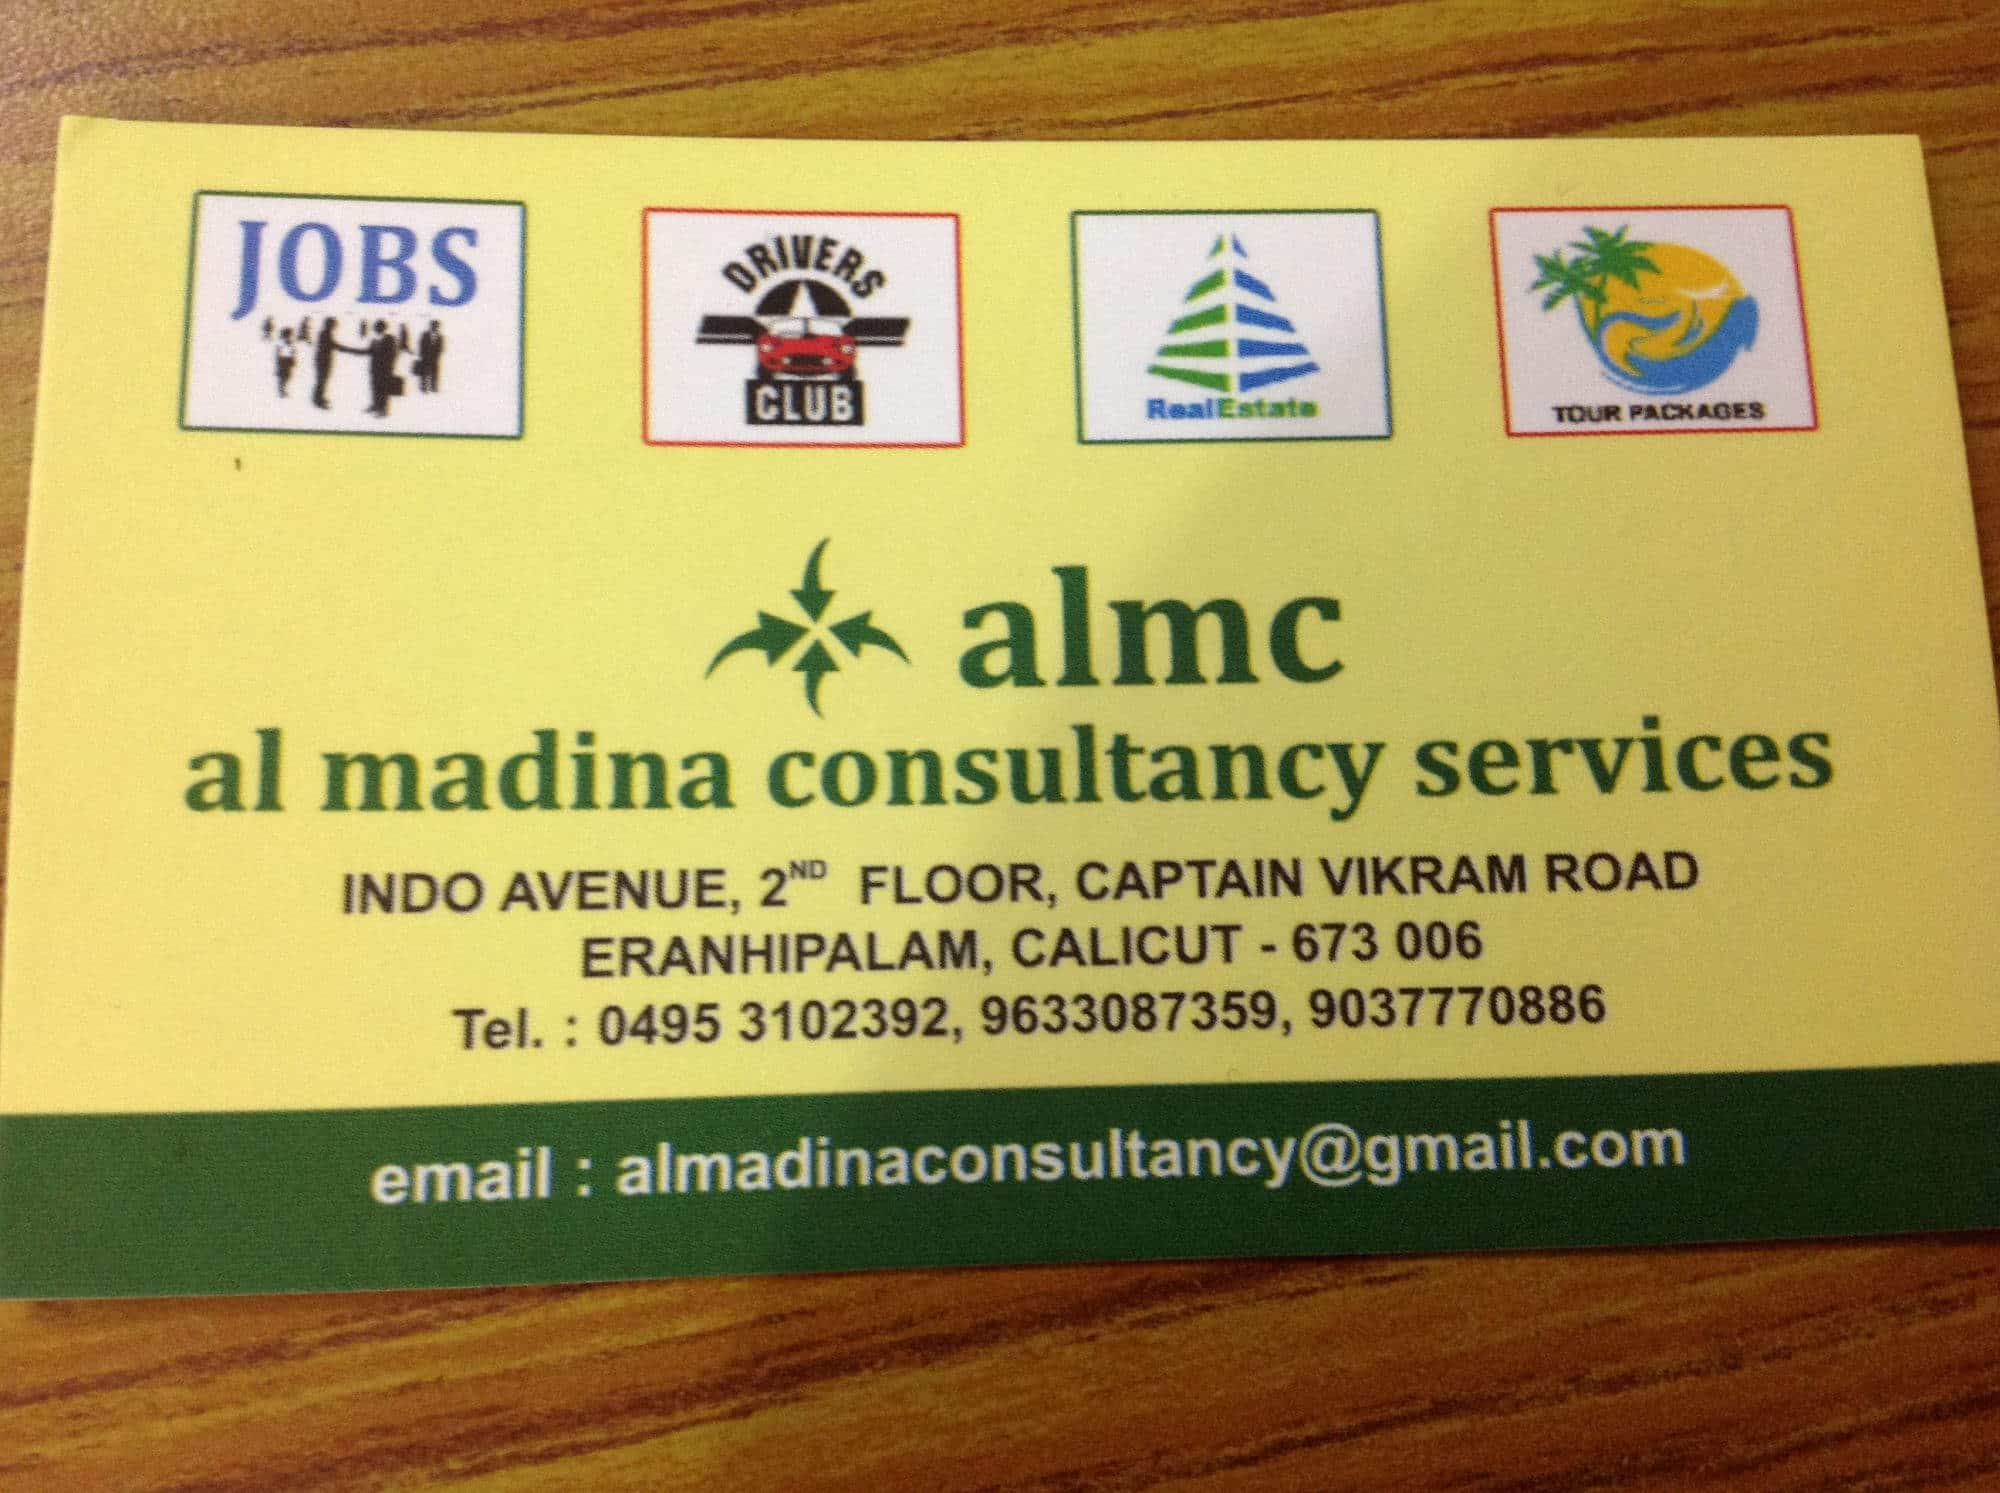 Al Madina Consultancy, Eranhipalam - Placement Services (For